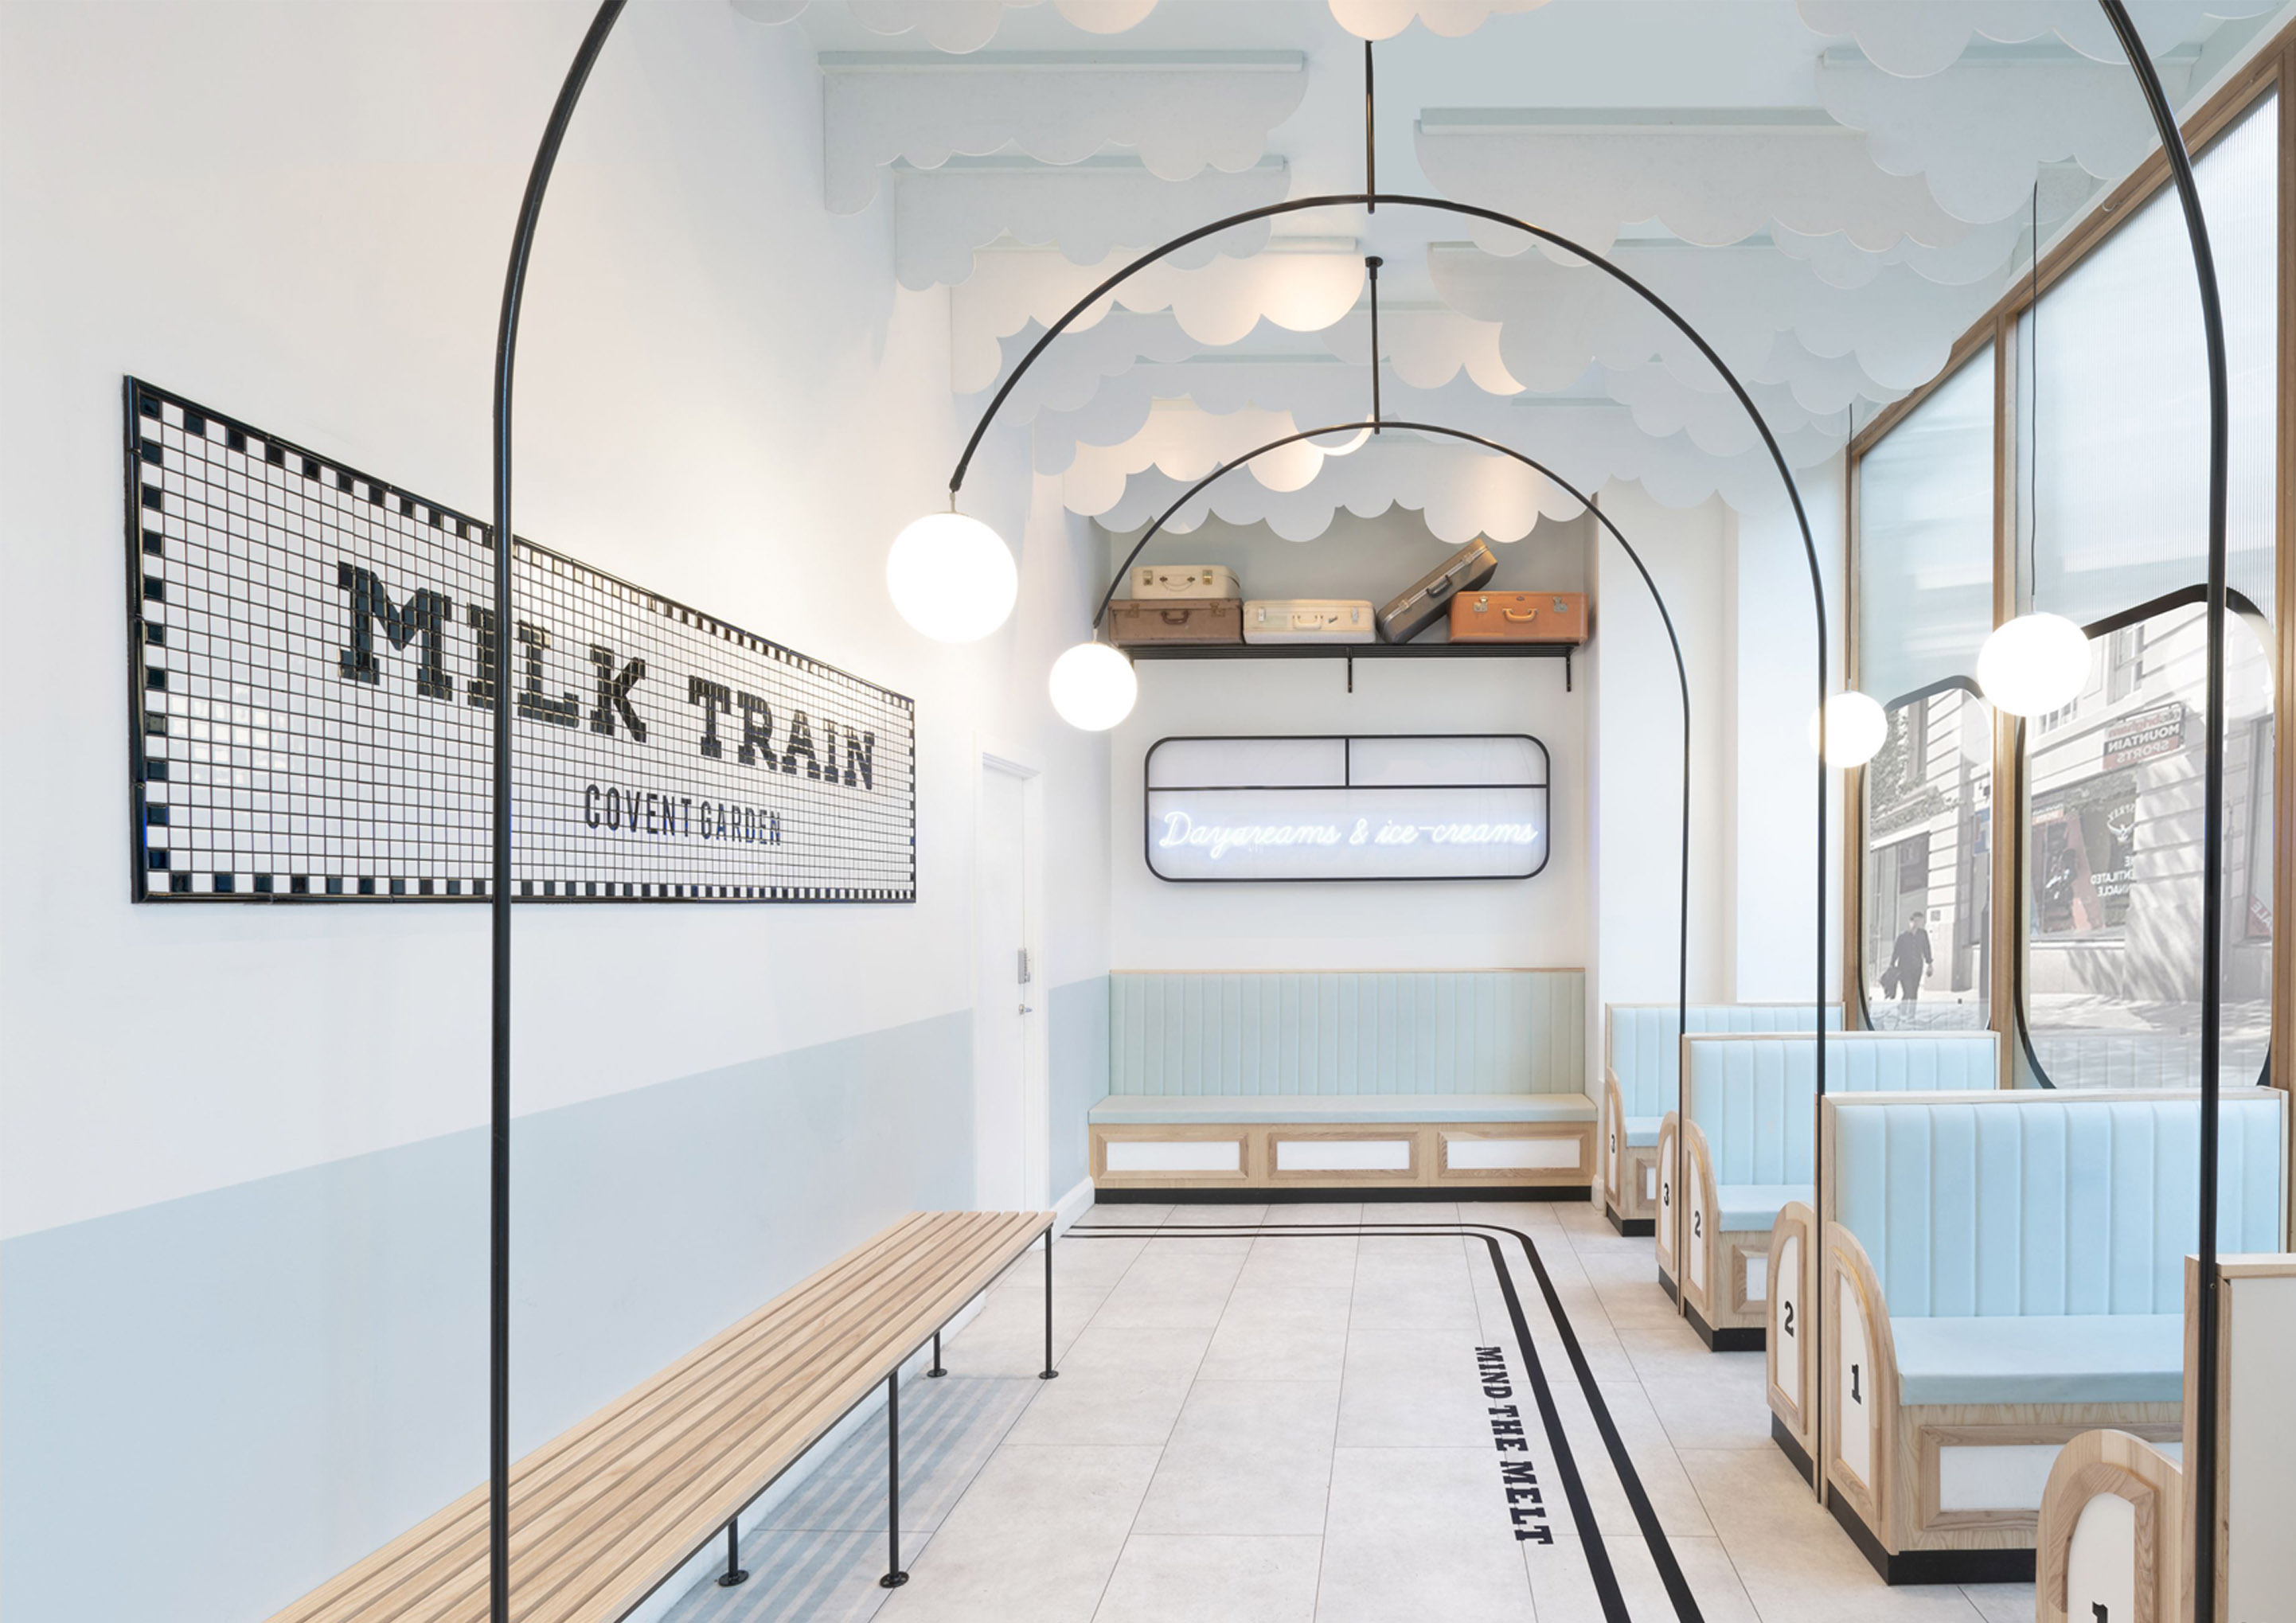 Gelateria Milk Train a Londra